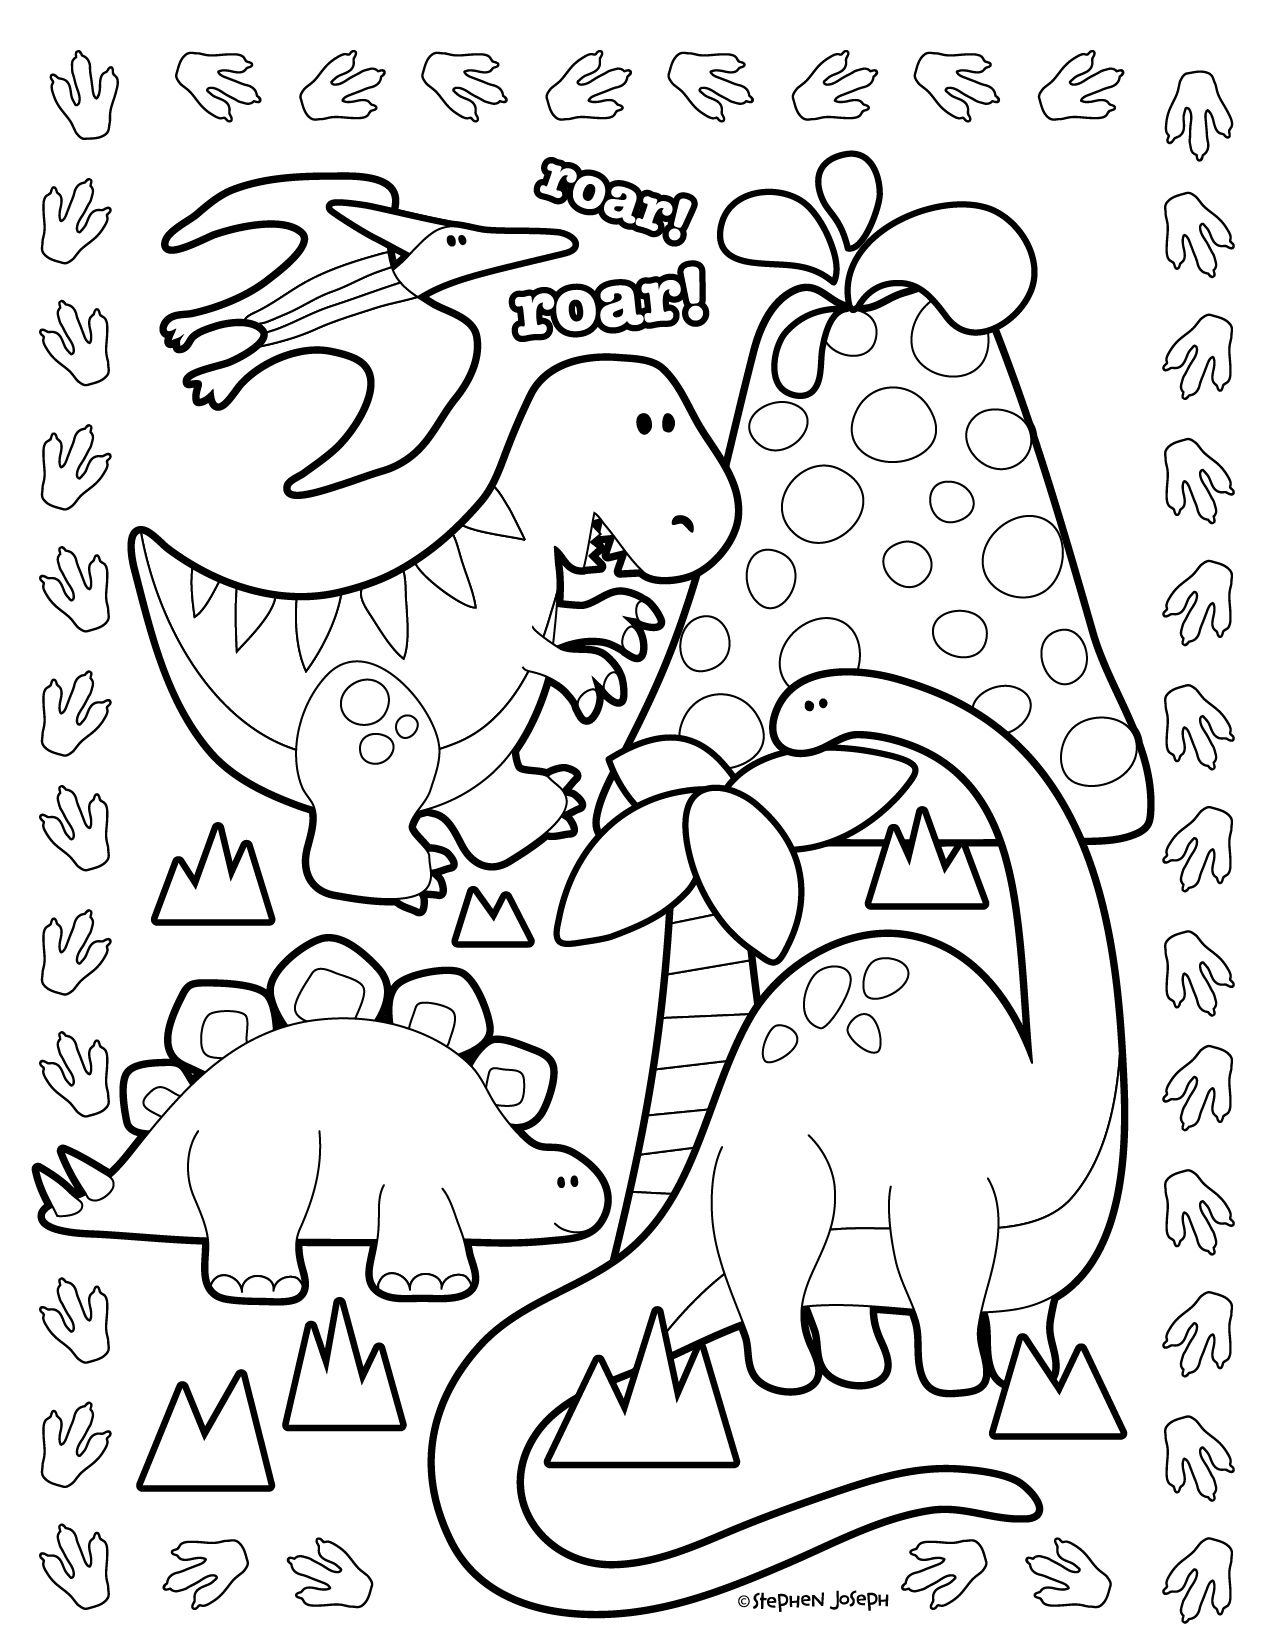 Dino Coloring Page - Printable & Free! By Stephen Joseph Gifts ...